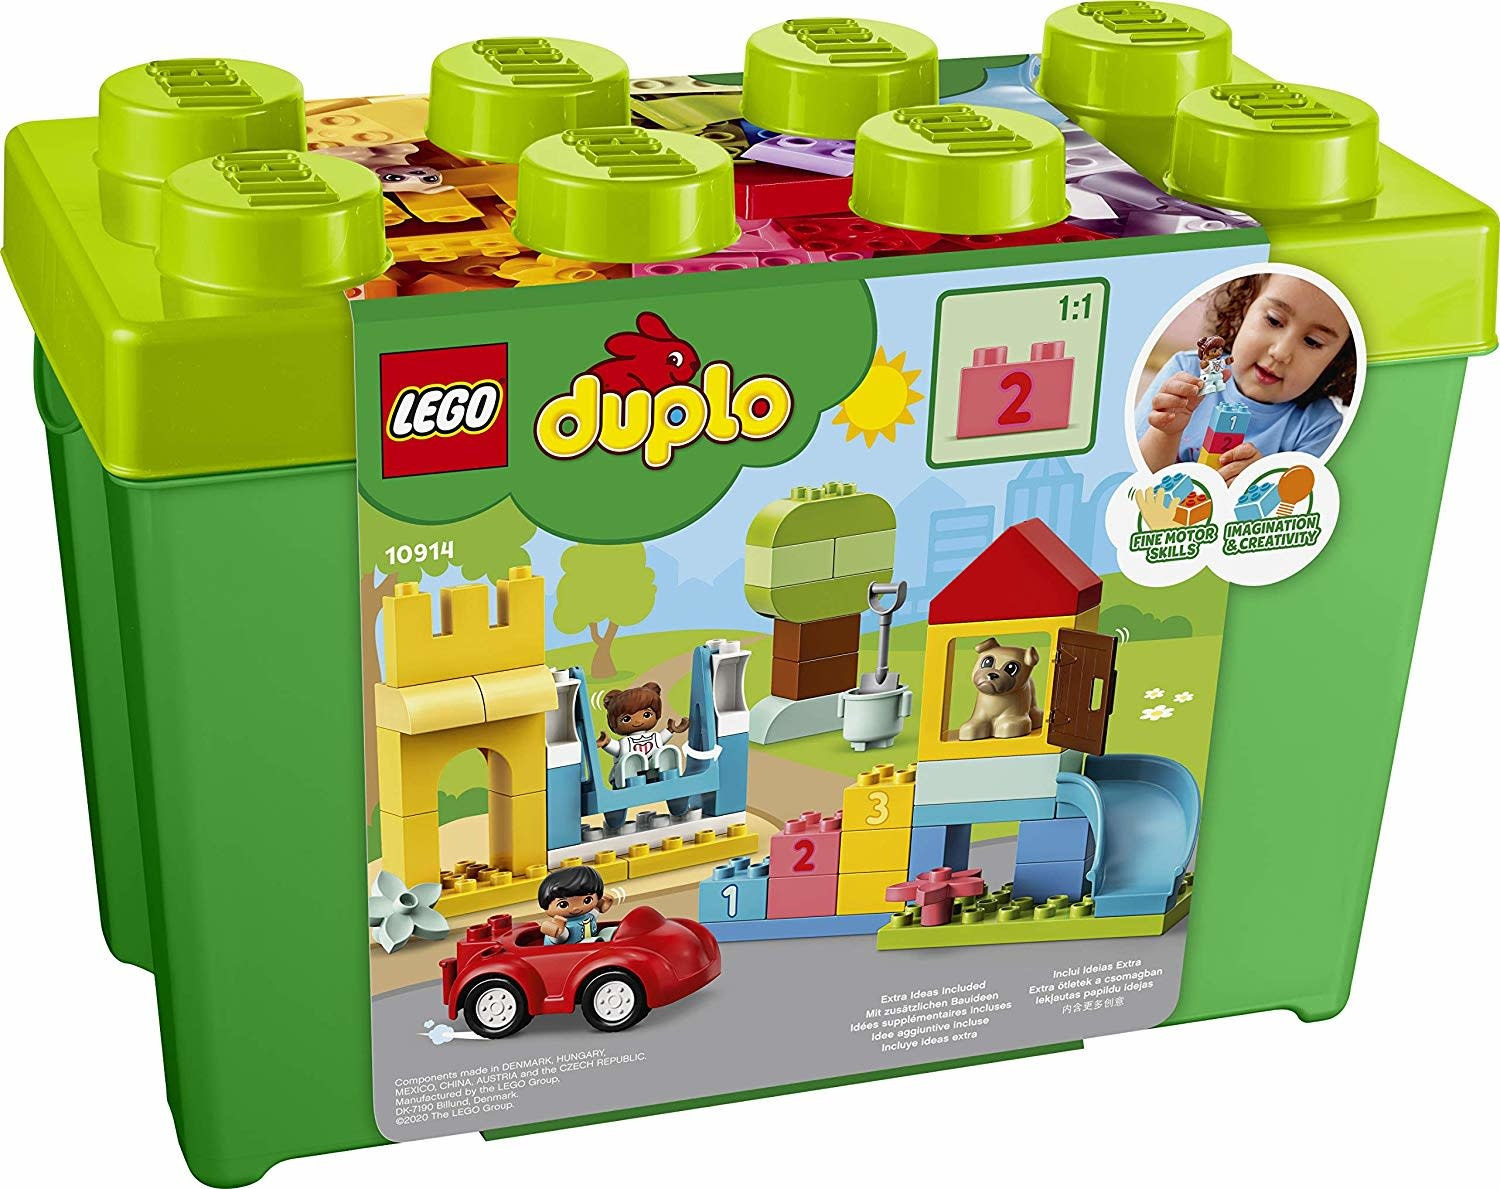 10914 Deluxe Brick Box by LEGO/duplo